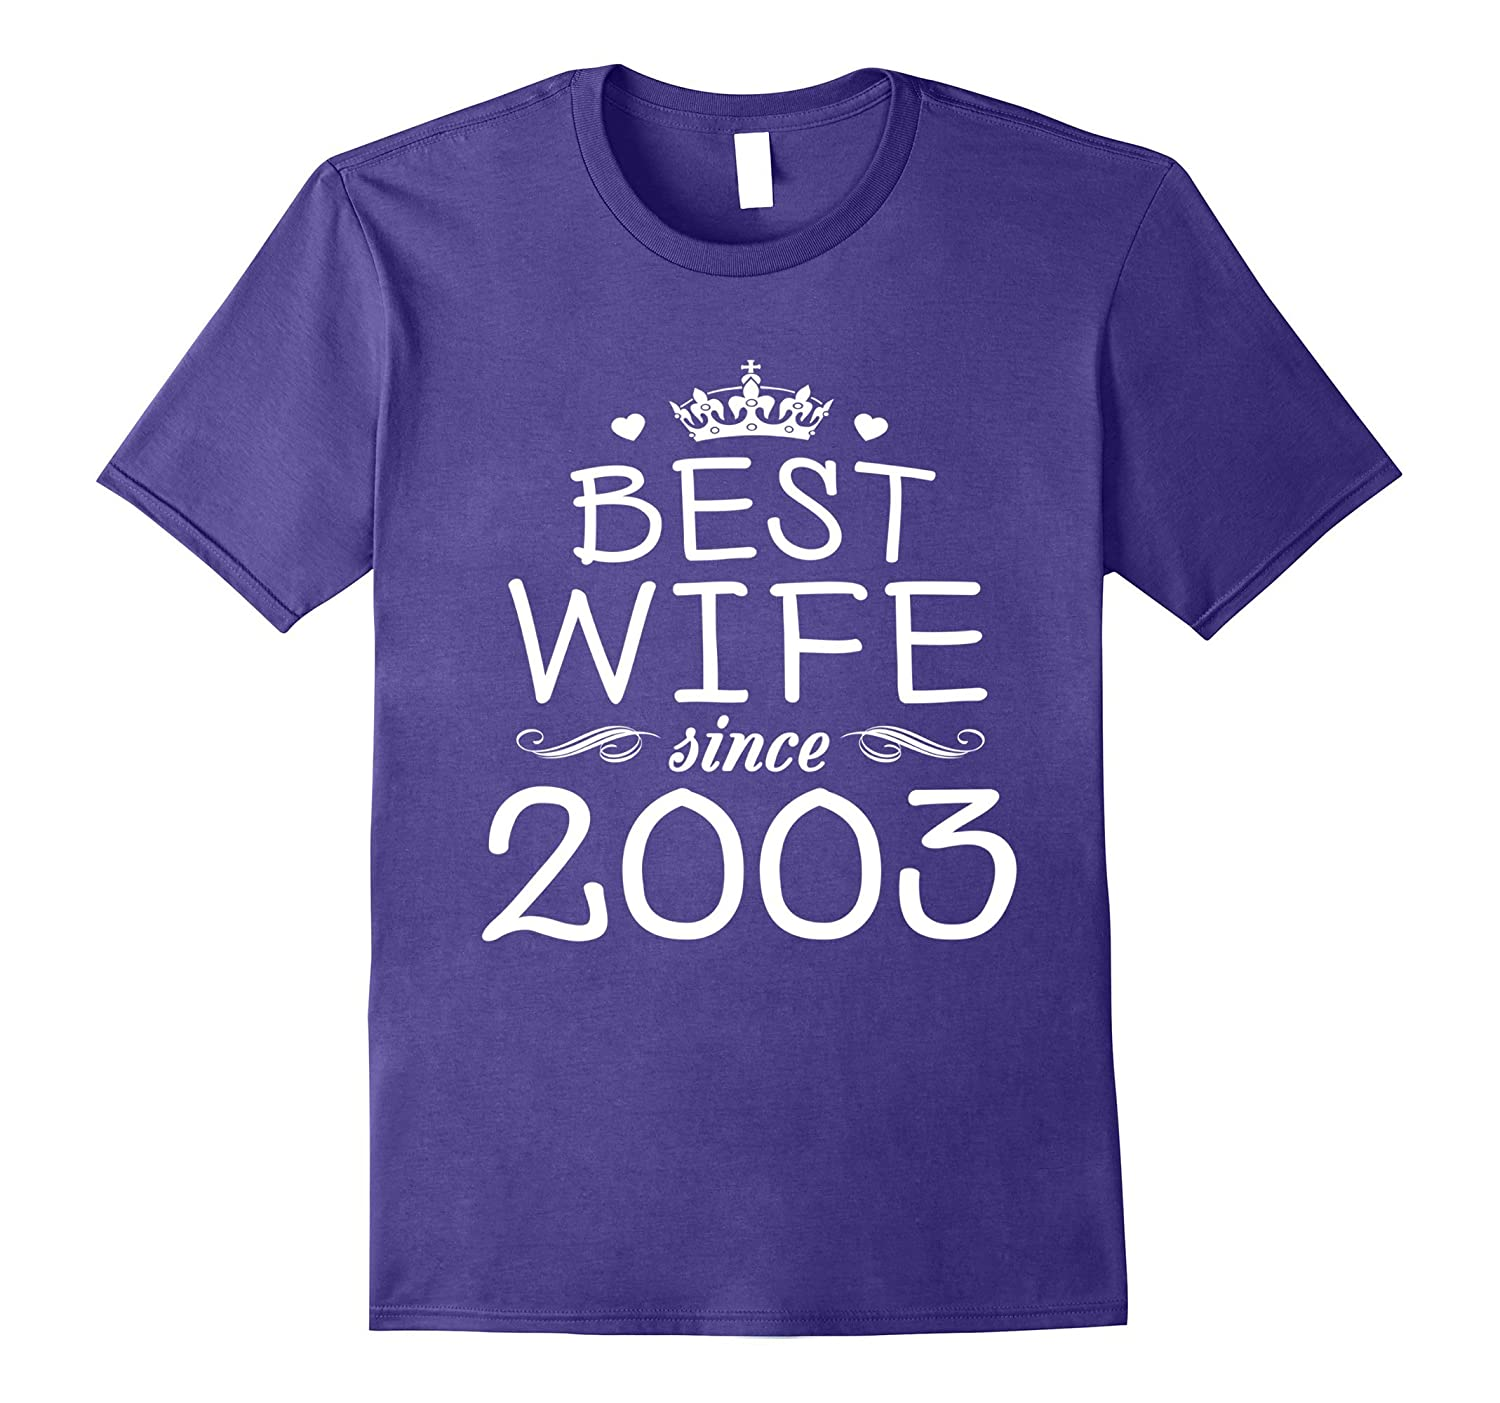 Wedding Night Gift For Wife: 14th Wedding Anniversary Gift Ideas For Her-Wife Since